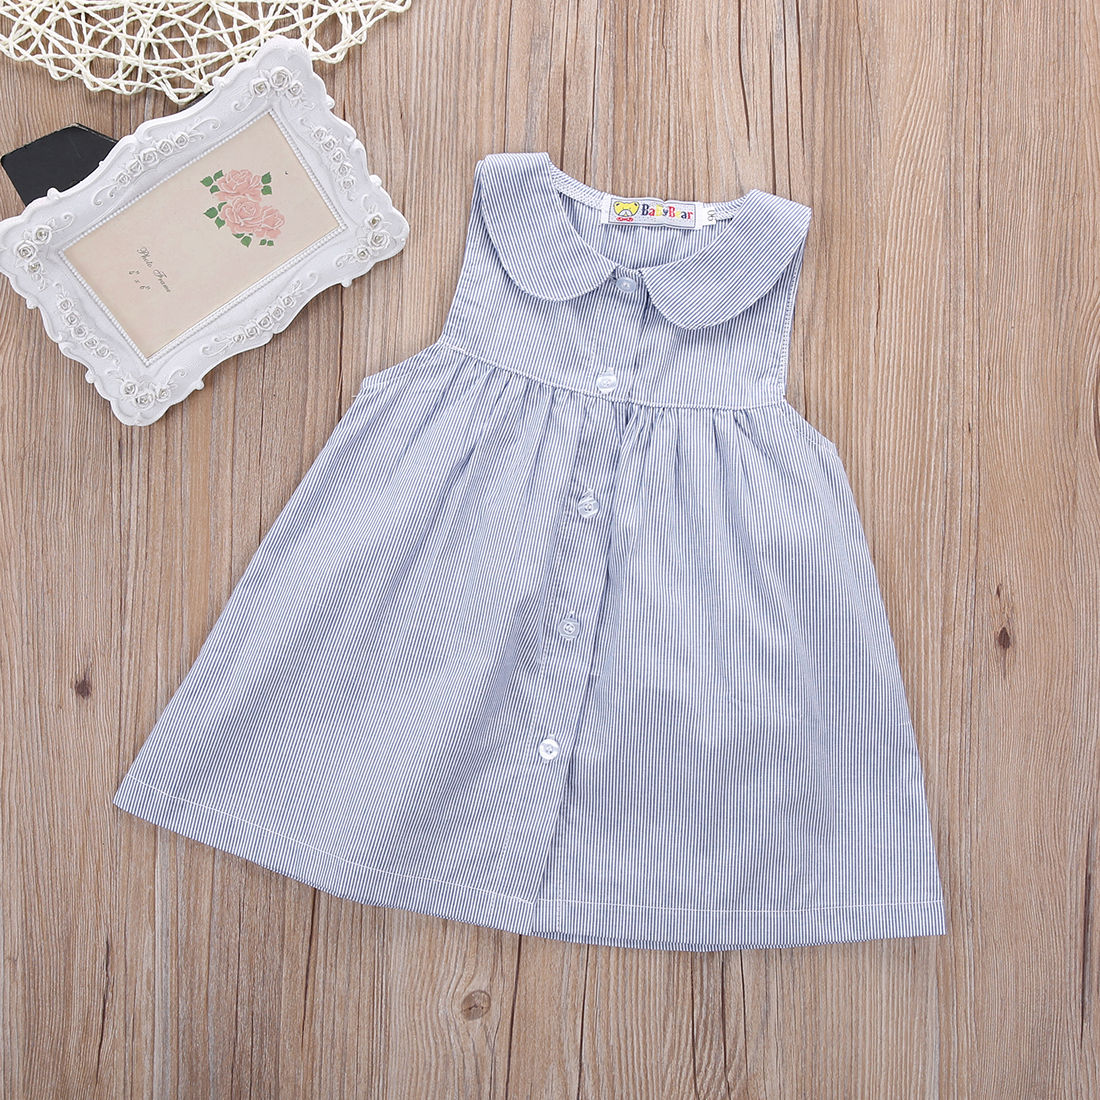 2016 New Chilren Dress top Baby Gap Toddler Girl Leopard Sleeveless Cotton  Dress Shirt Size 0 5Y-in Dresses from Mother   Kids on Aliexpress.com  334fd98902e3